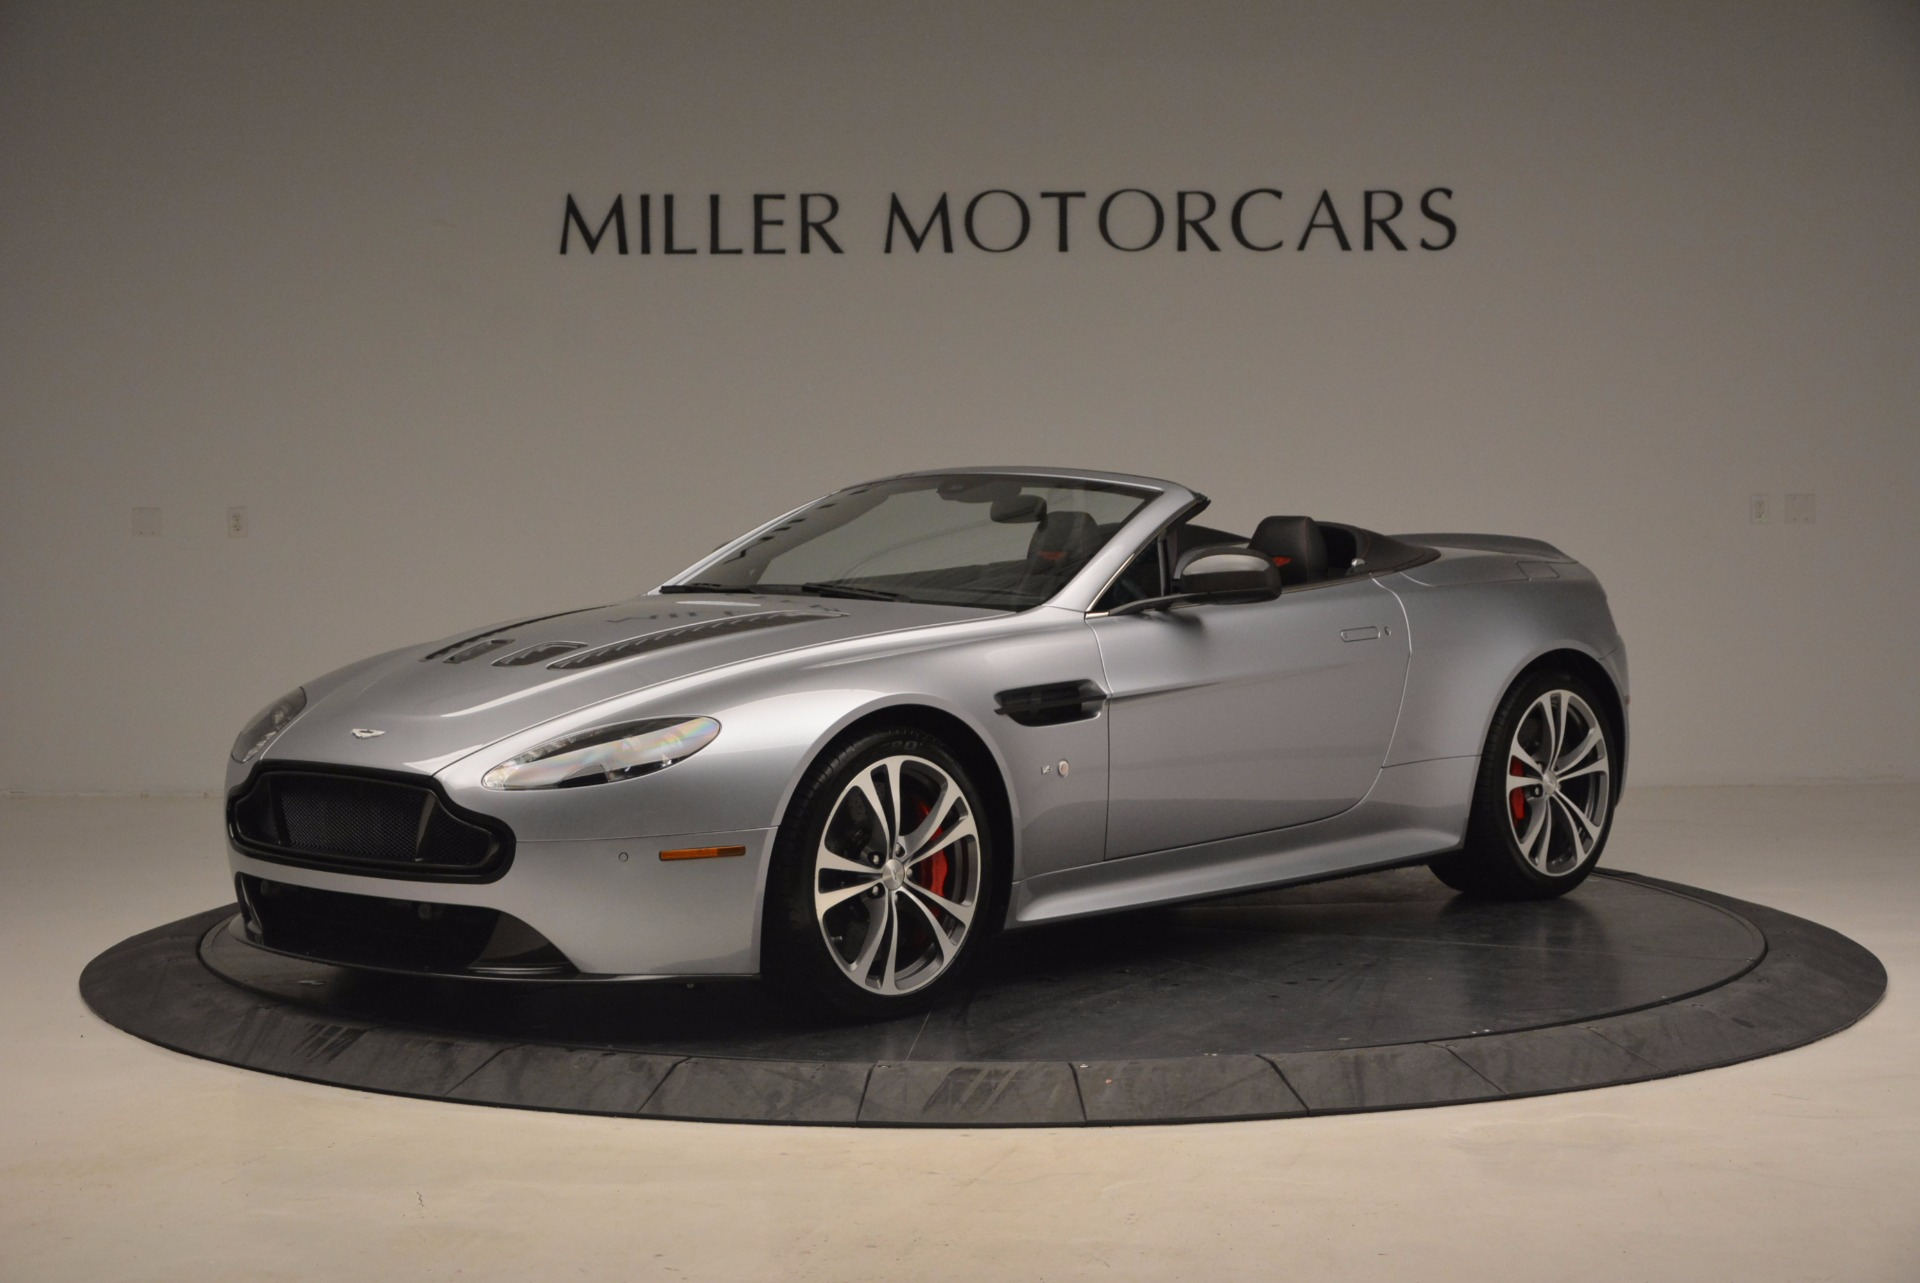 Used 2015 Aston Martin V12 Vantage S Roadster for sale Sold at Bentley Greenwich in Greenwich CT 06830 1